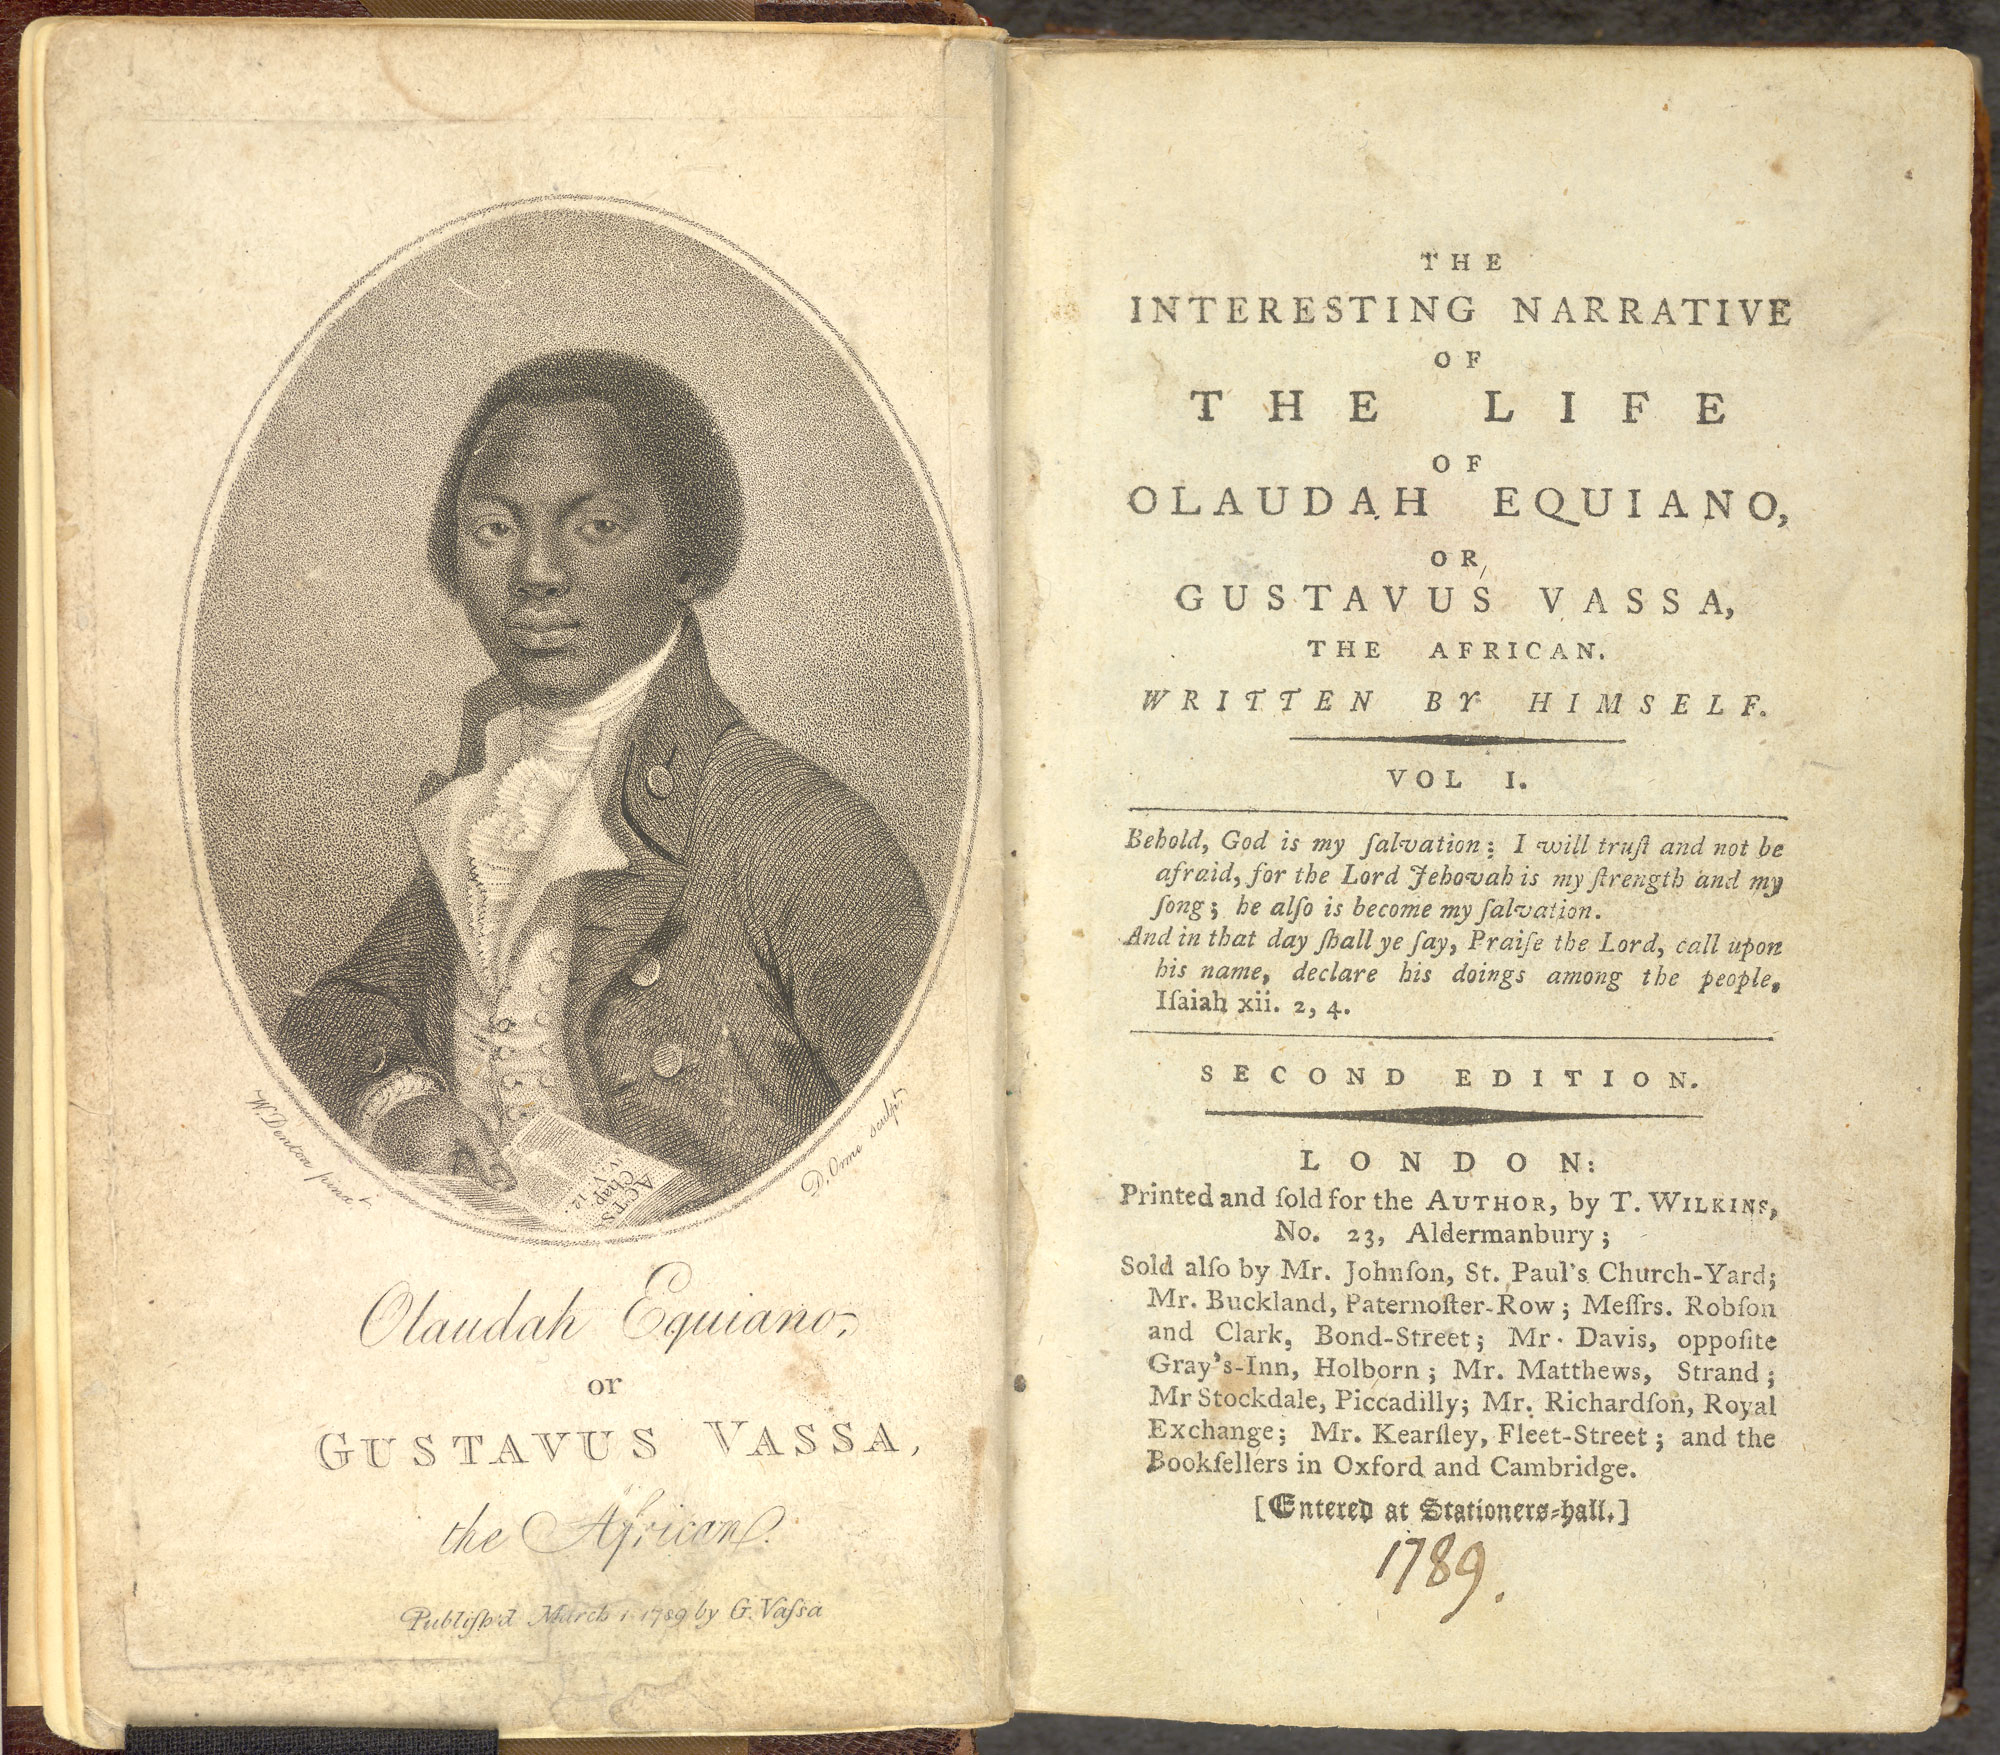 The Life of Olaudah Equinao [page: frontispiece and title page]